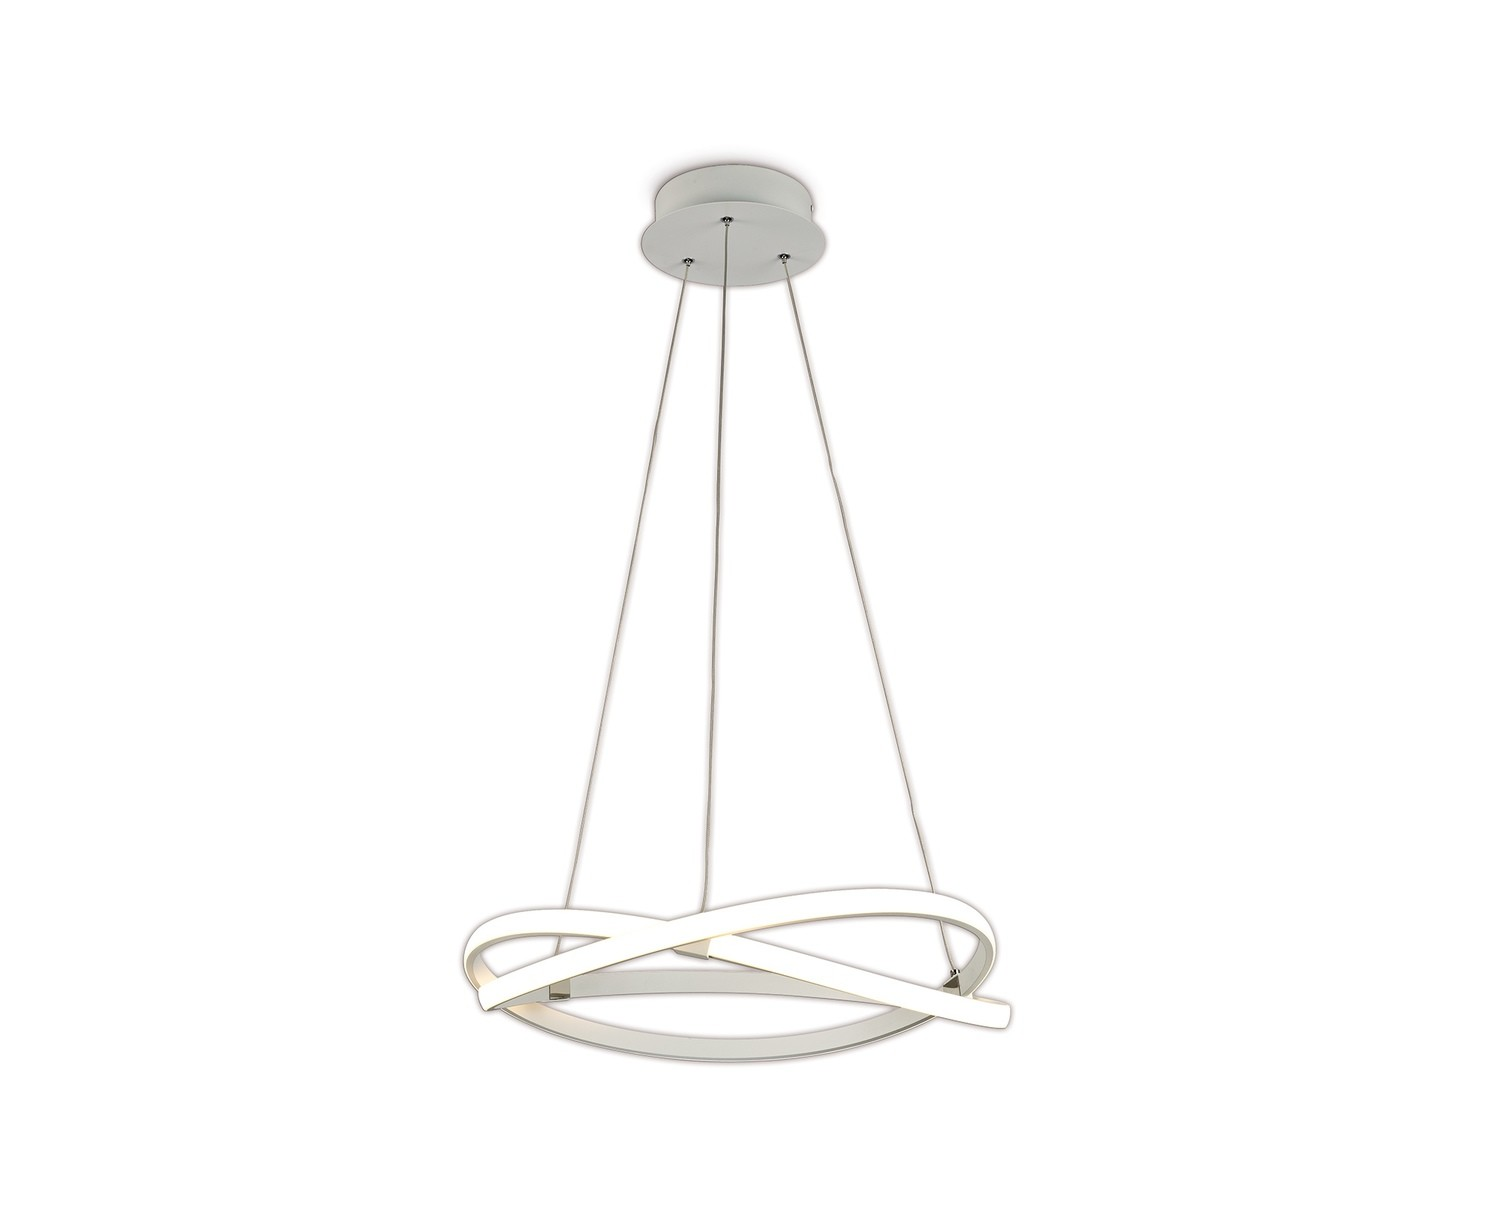 Infinity Blanco Pendant 42W LED 3000K, 3400lm, Dimmable White/White Acrylic